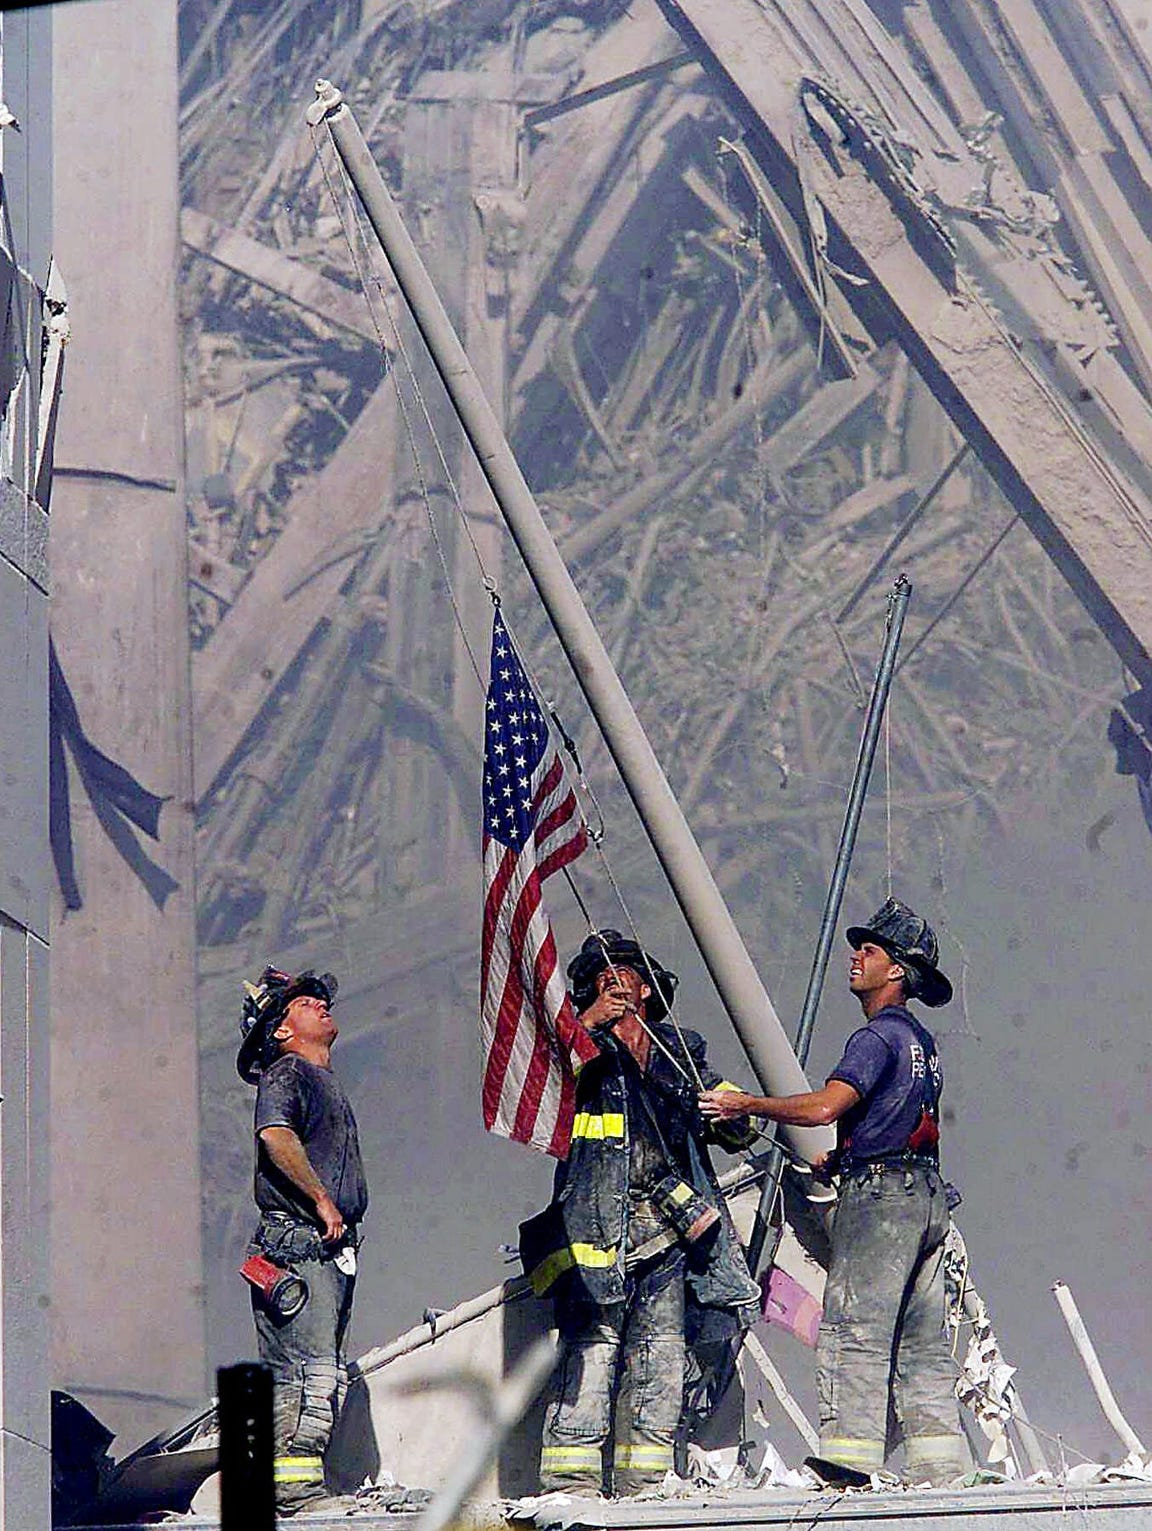 Firefighters raise a flag at the World Trade Center in New York.